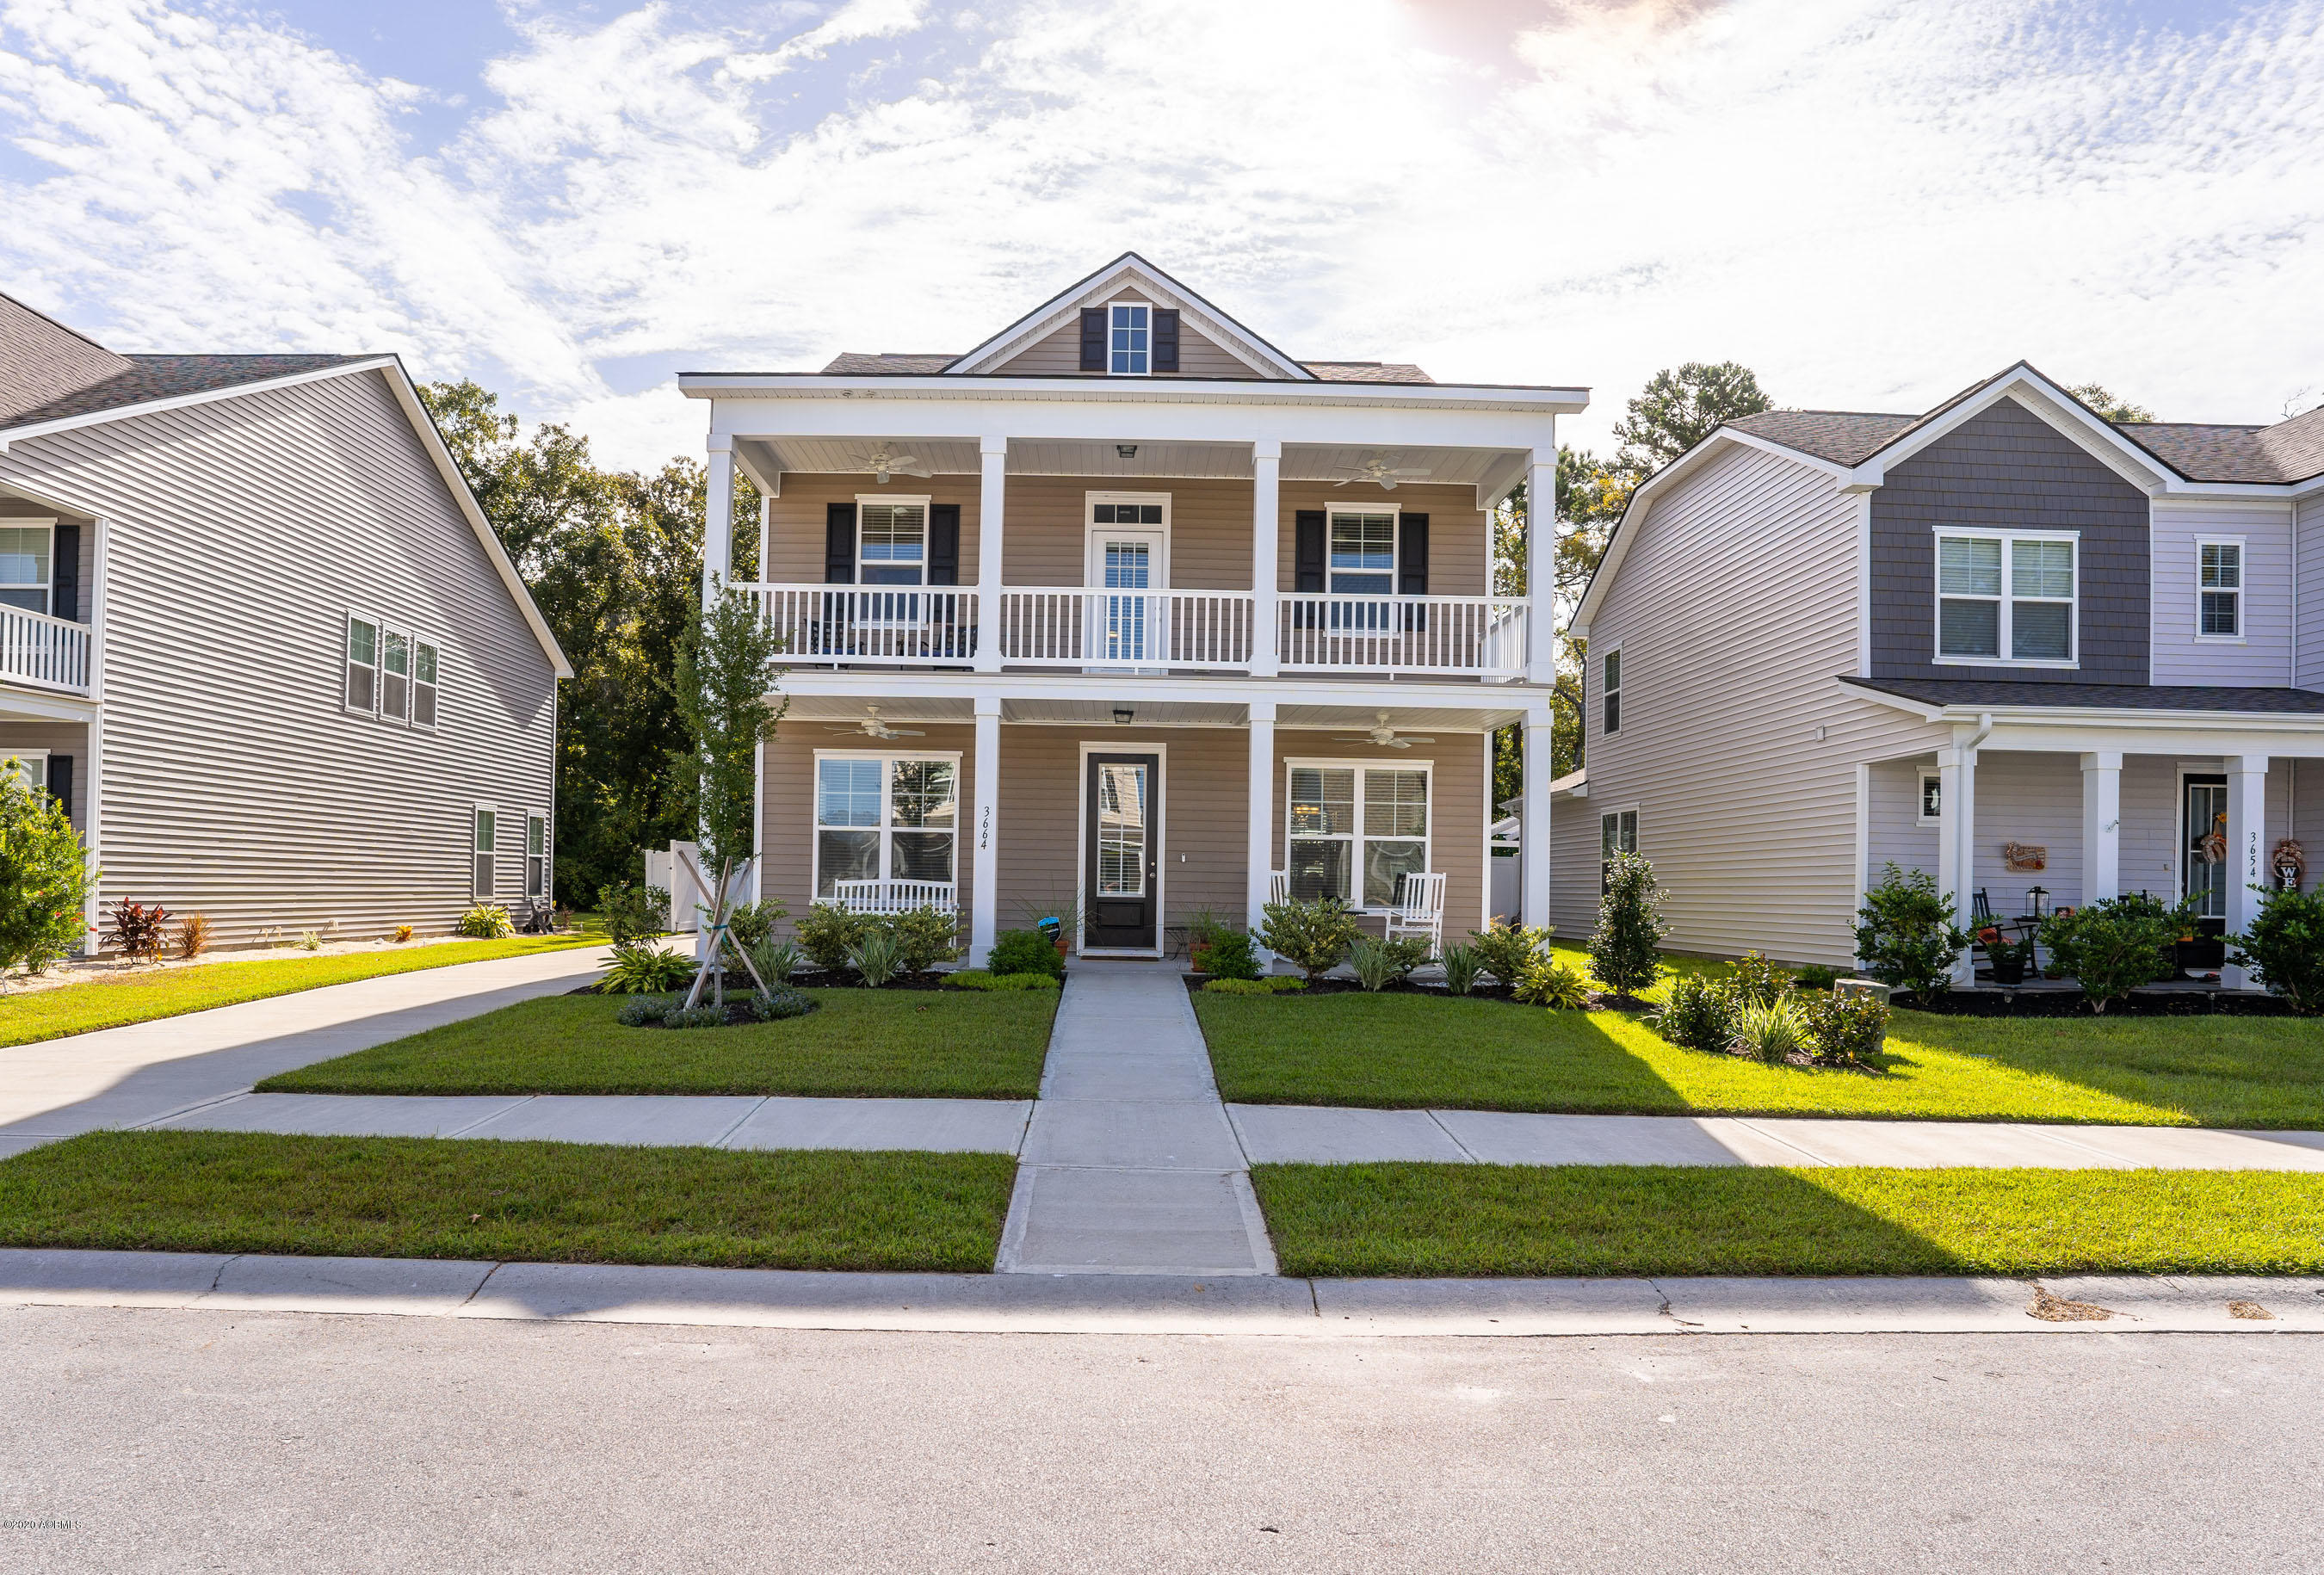 Photo of 3664 Oyster Bluff Drive, Beaufort, SC 29907